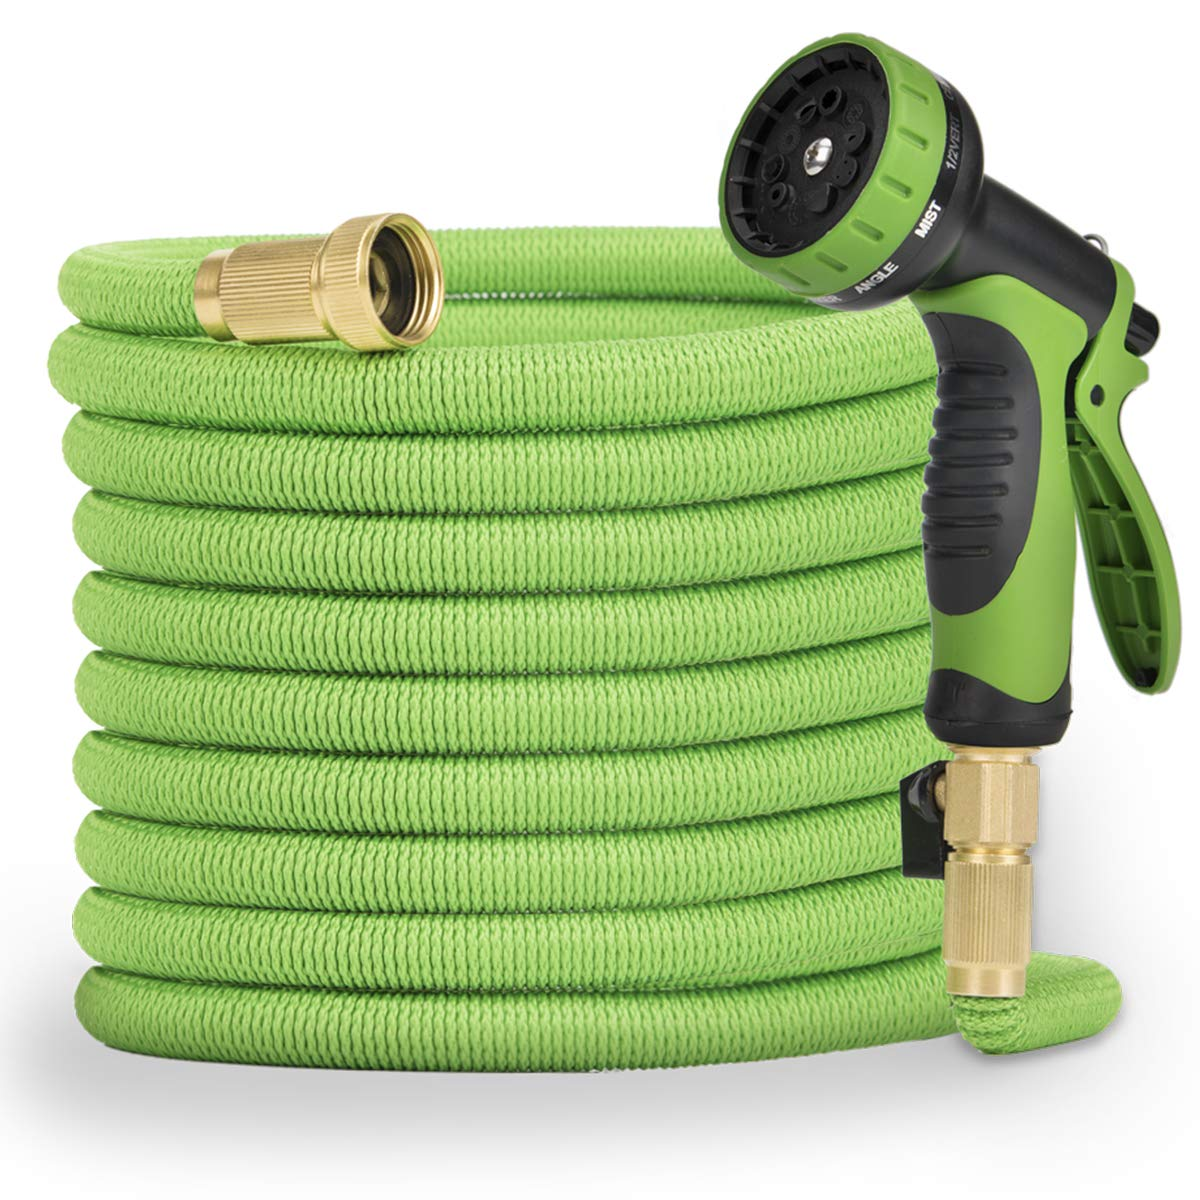 Pamapic 50ft Garden Hose 【Expandable】, Lightweight and Durable, Flexible Water Hose with 3/4 Nozzle Solid Brass Connector and Multi-Function Spray Nozzle, Suitable For Patio Lawn & Garden, Storage Bag